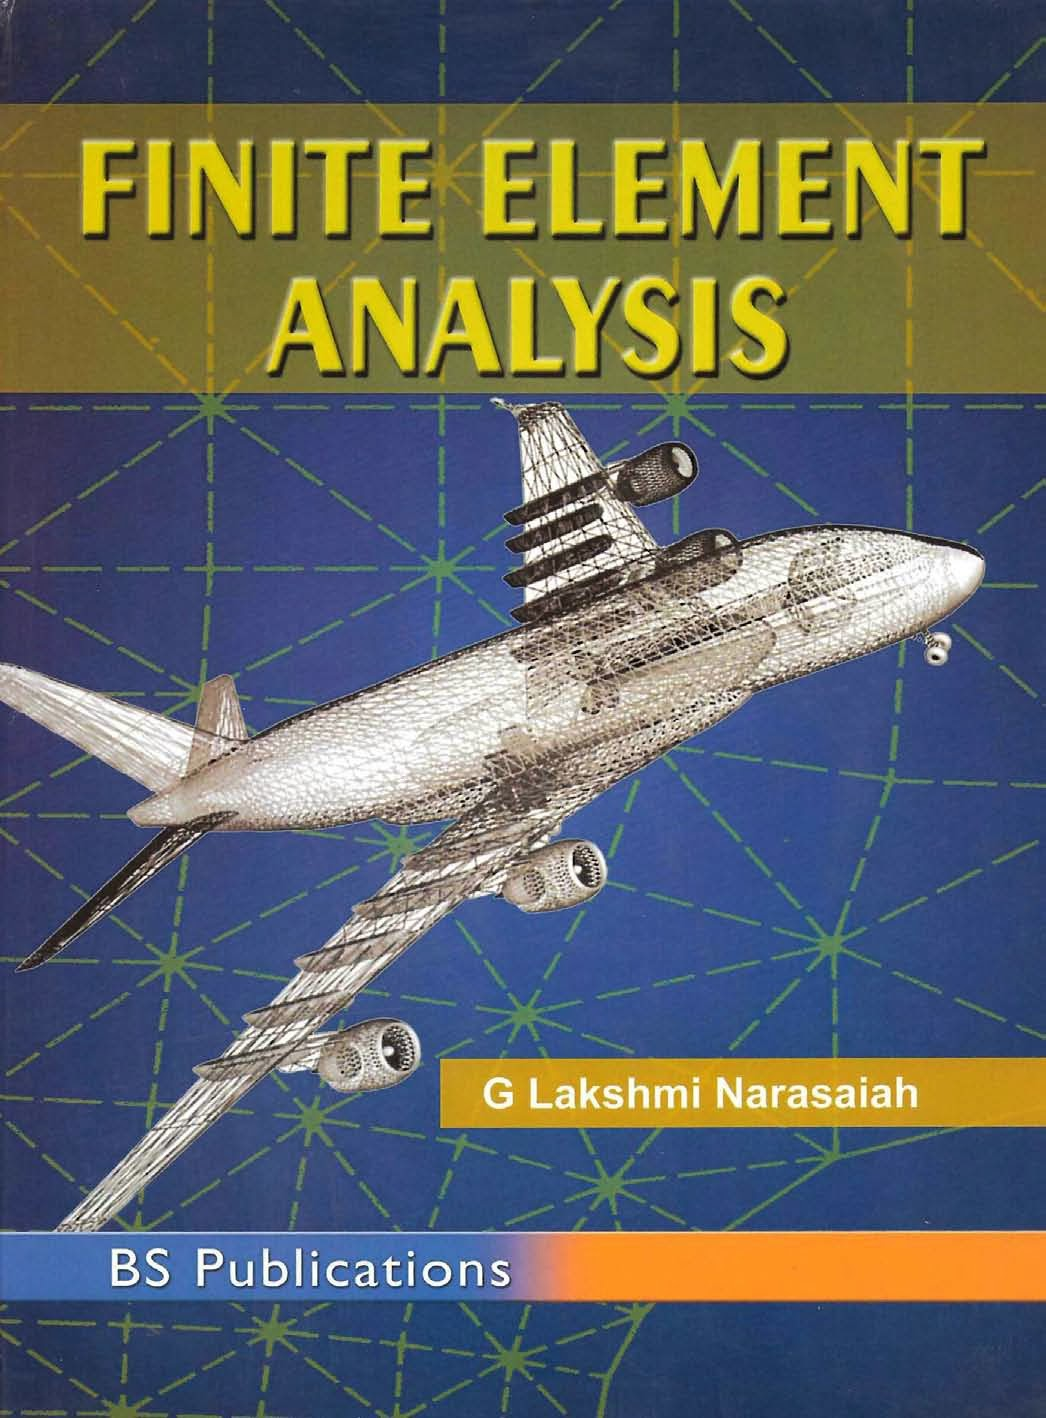 Book: Finite Element Analysis by G. Lakshmi Narasaiah